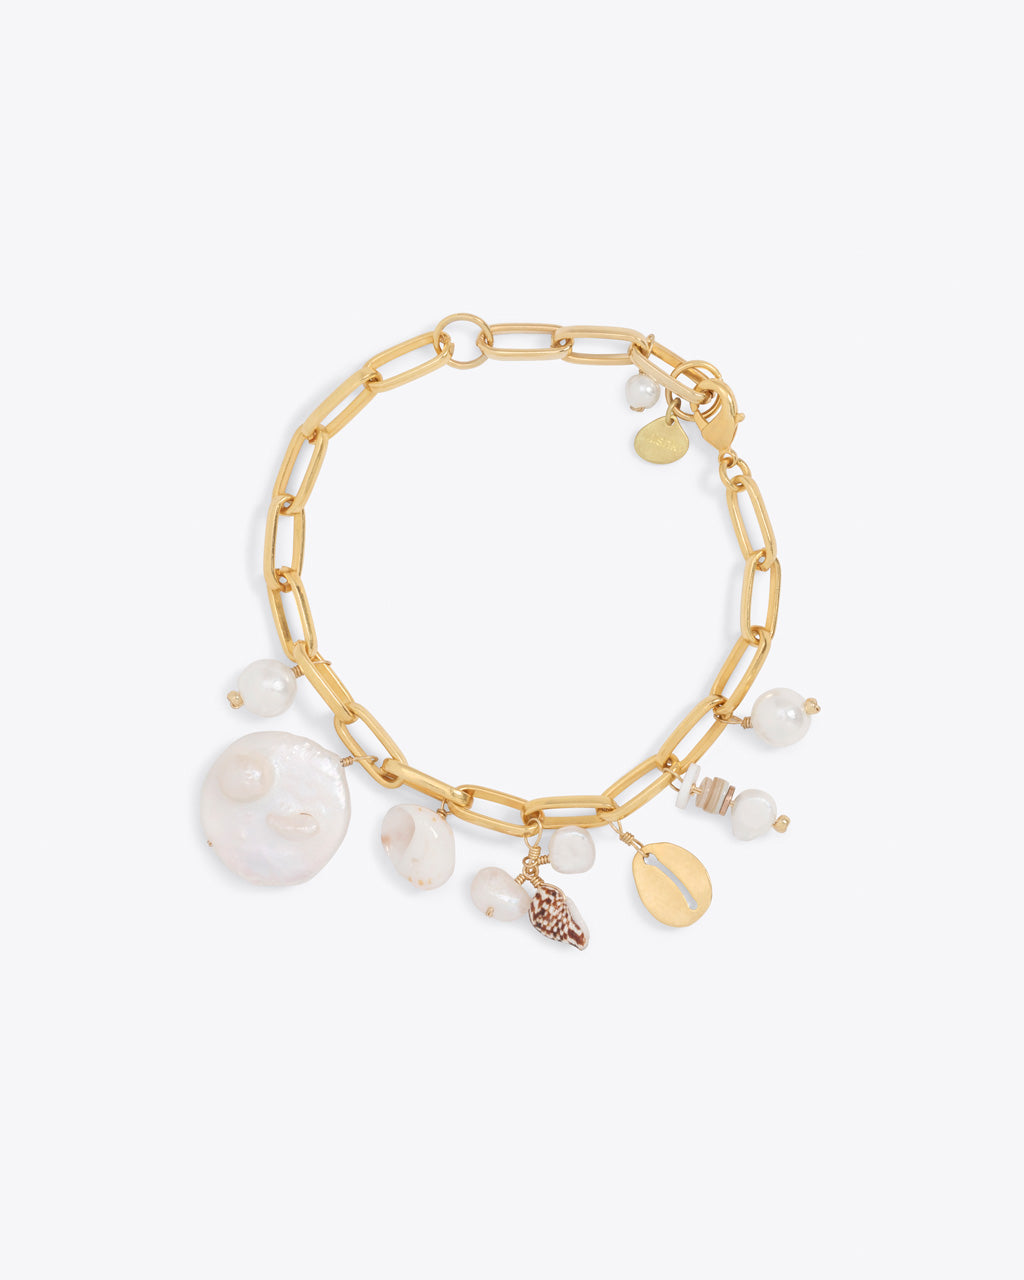 gold chain charm bracelet with pearl and shell charms